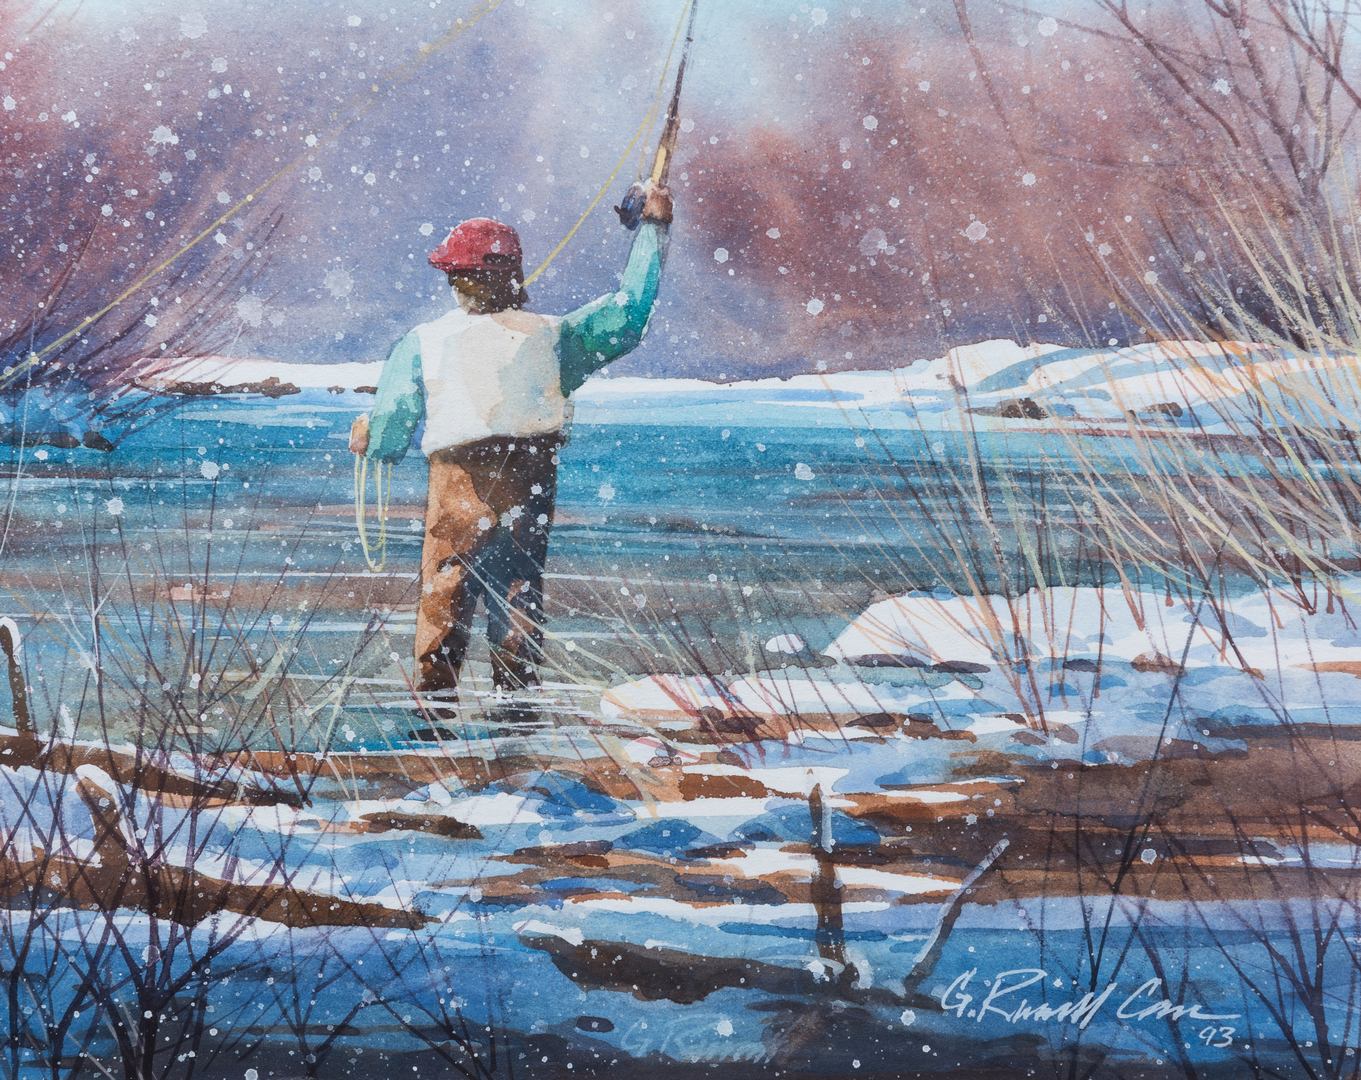 Lot 408 G Russell Case Watercolor Fly Fishing Scene